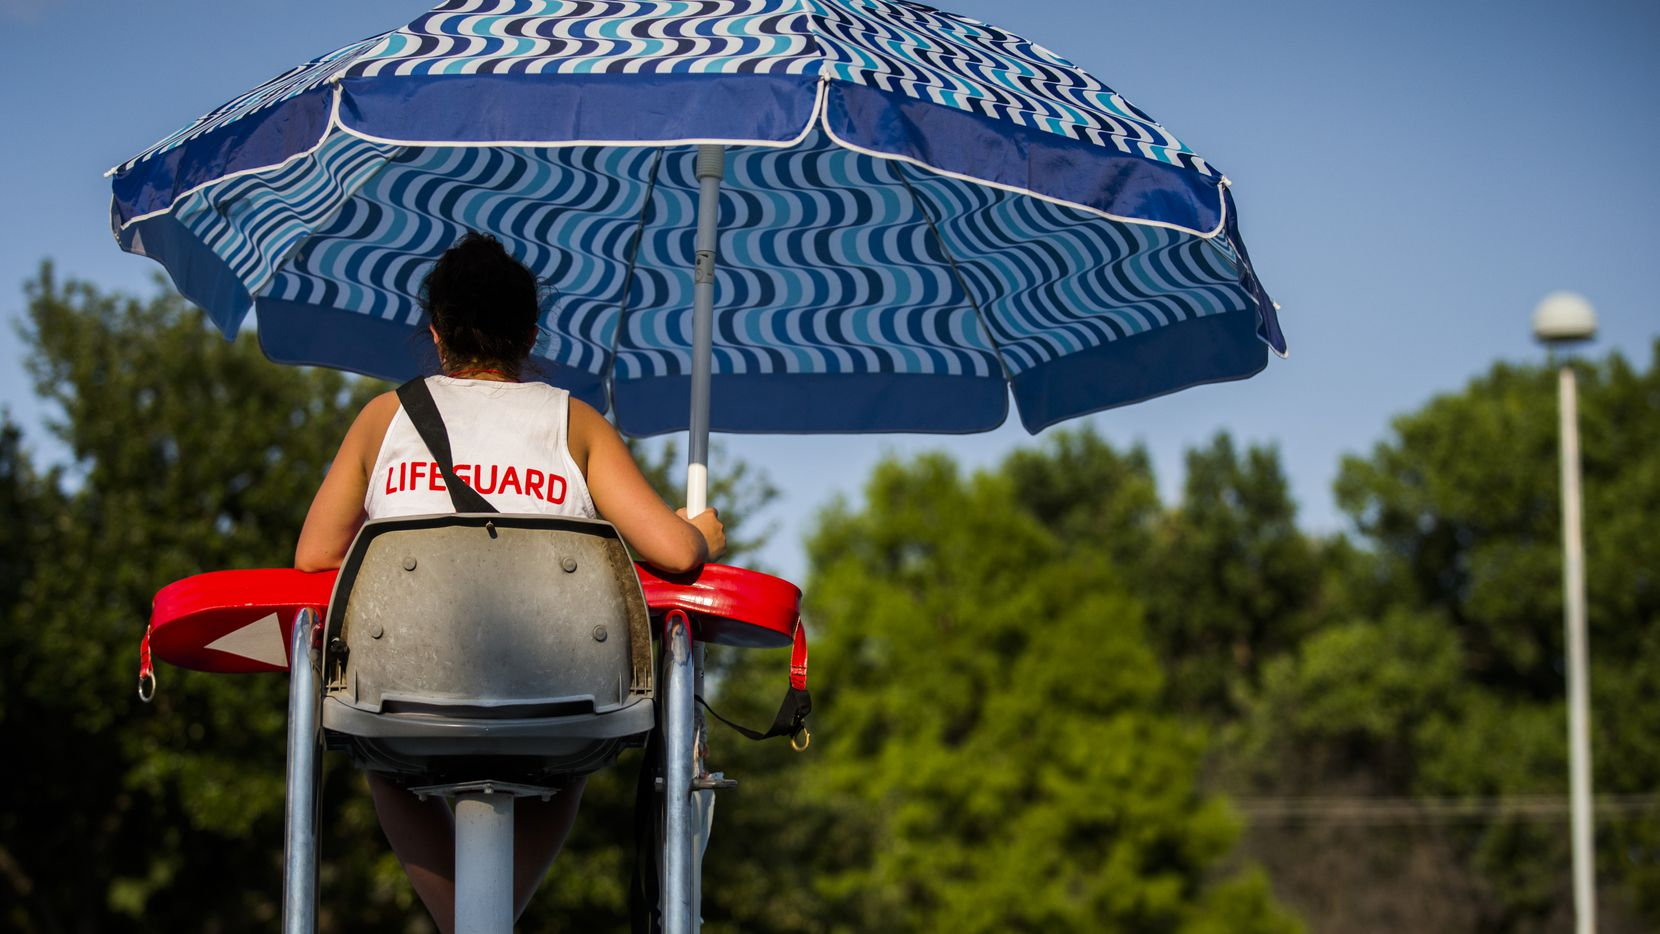 A lifeguard watches the pool at the Richardson Family YMCA in Richardson.